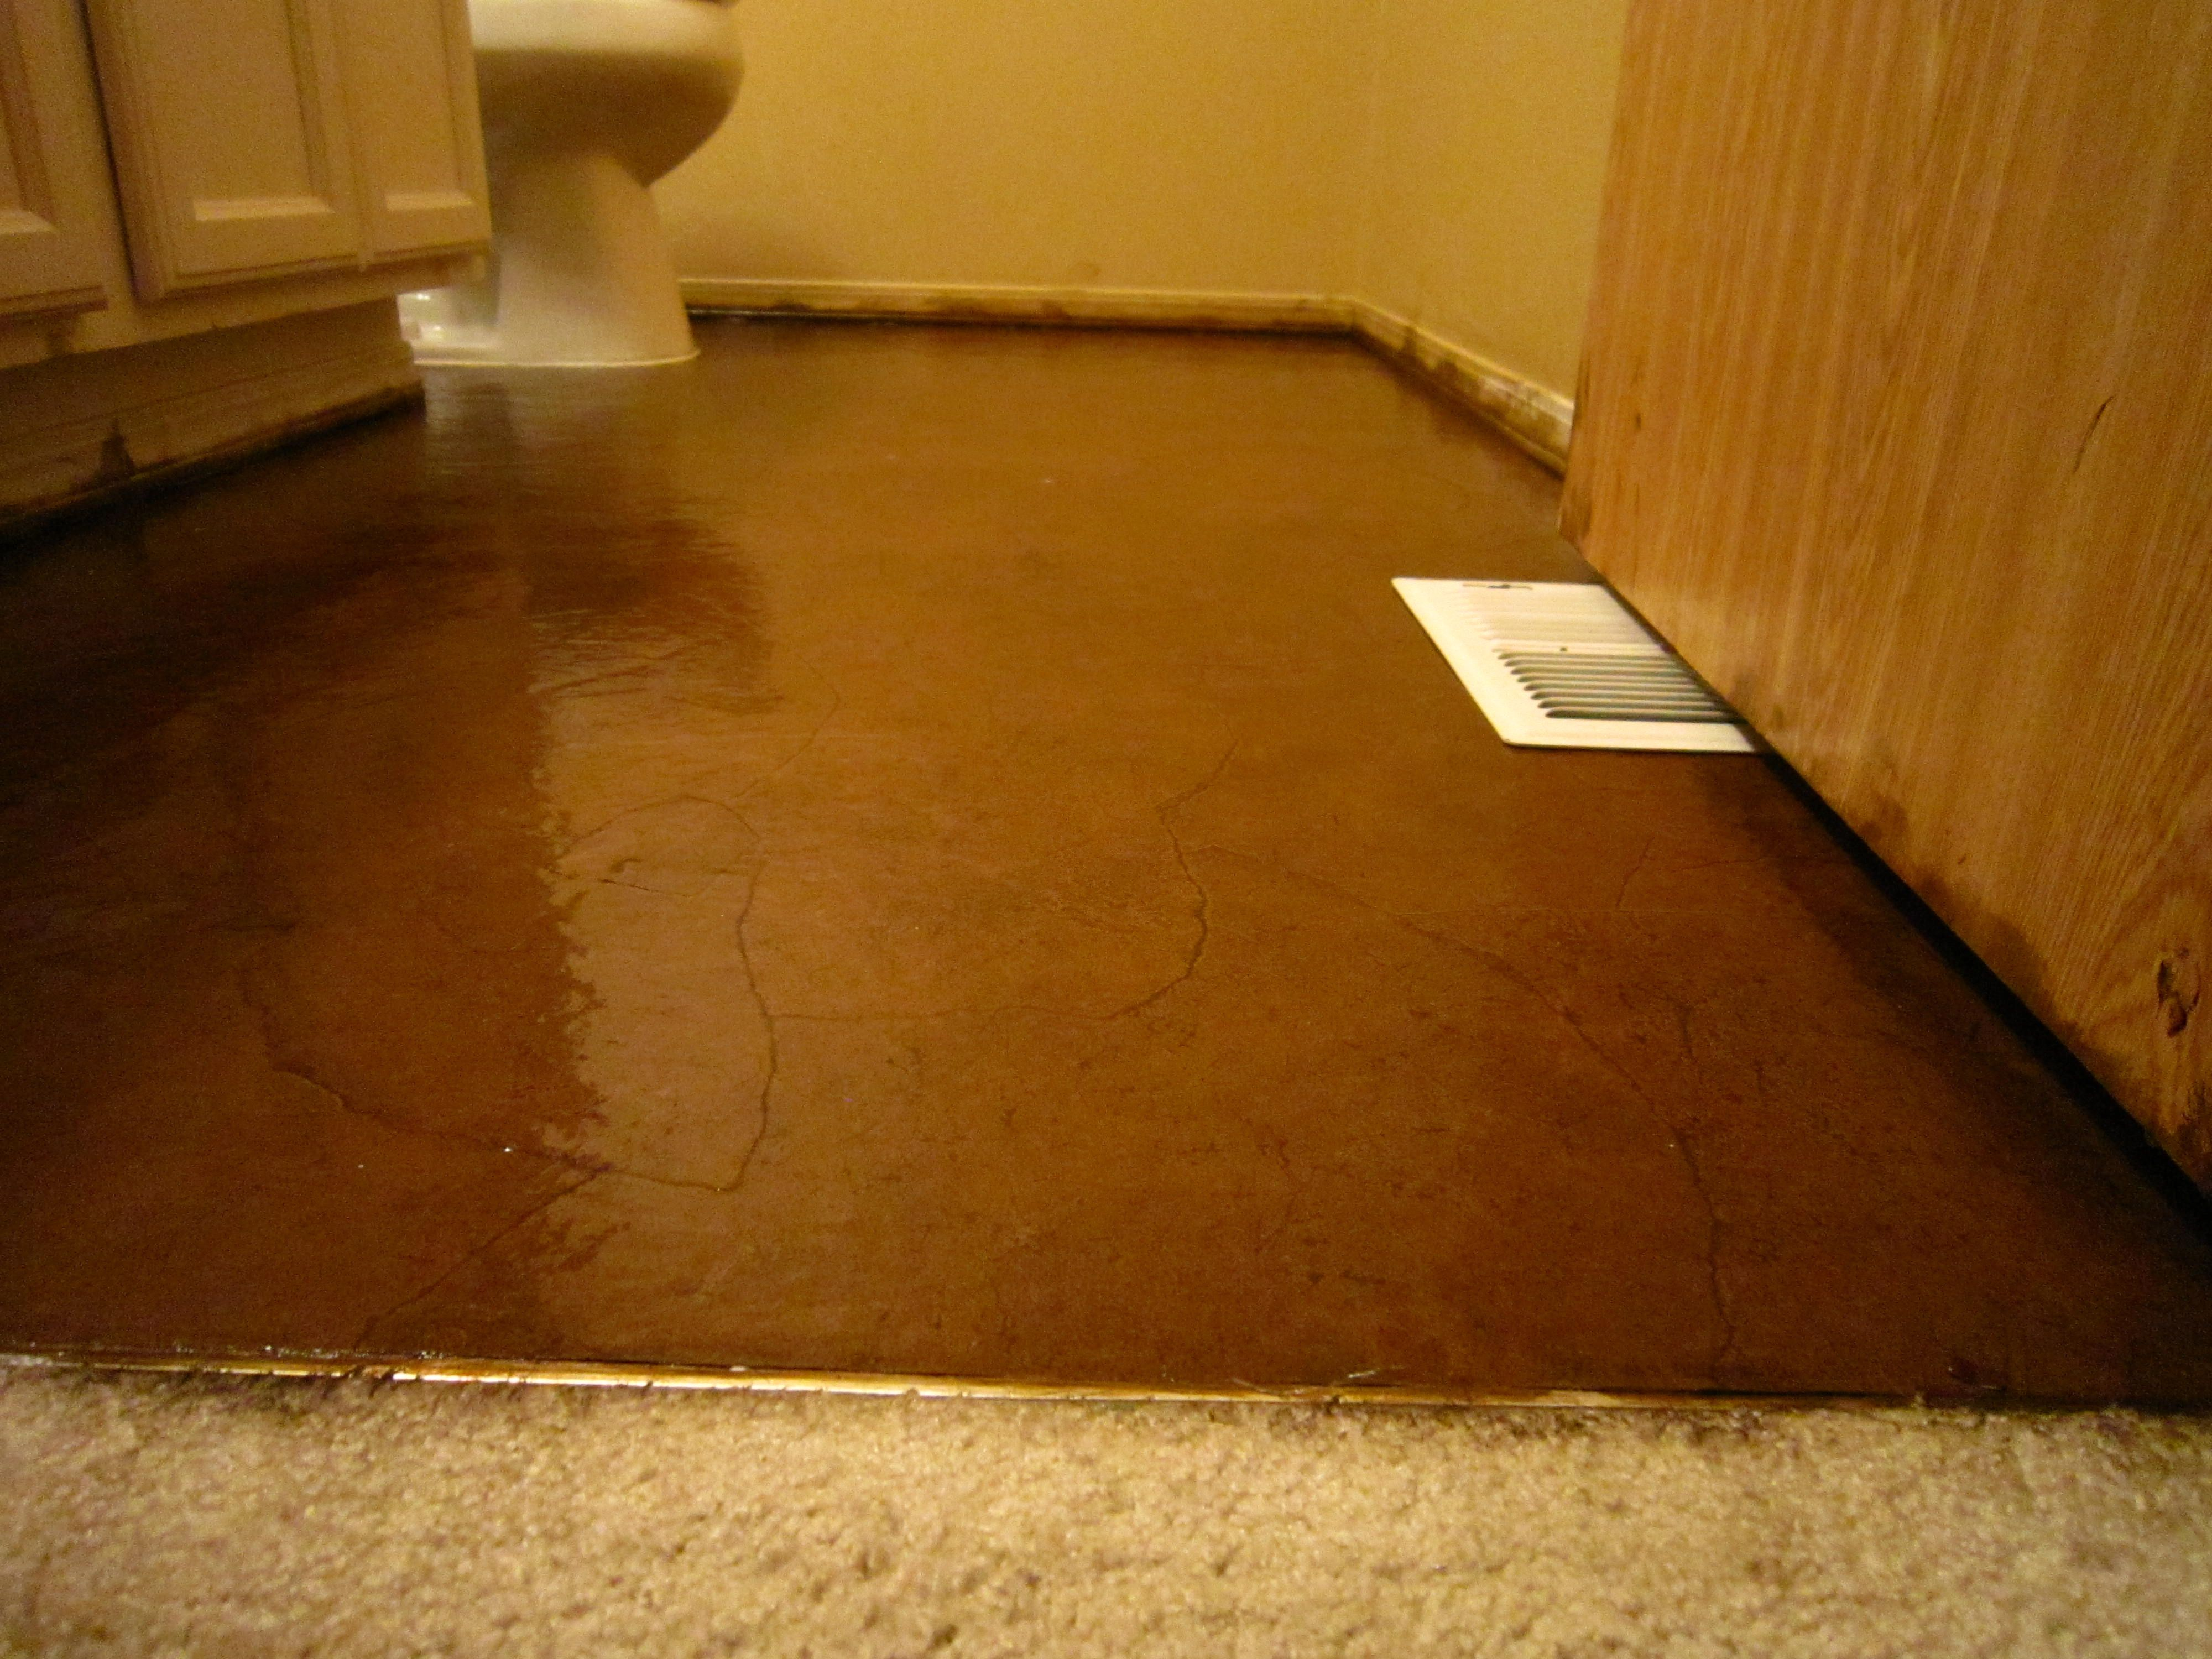 Diy stained brown paper floor awesomeness under 30 do it yourself diy stained brown paper floor awesomeness under 30 do it yourself hardwoodlaminate floor alternative solutioingenieria Image collections